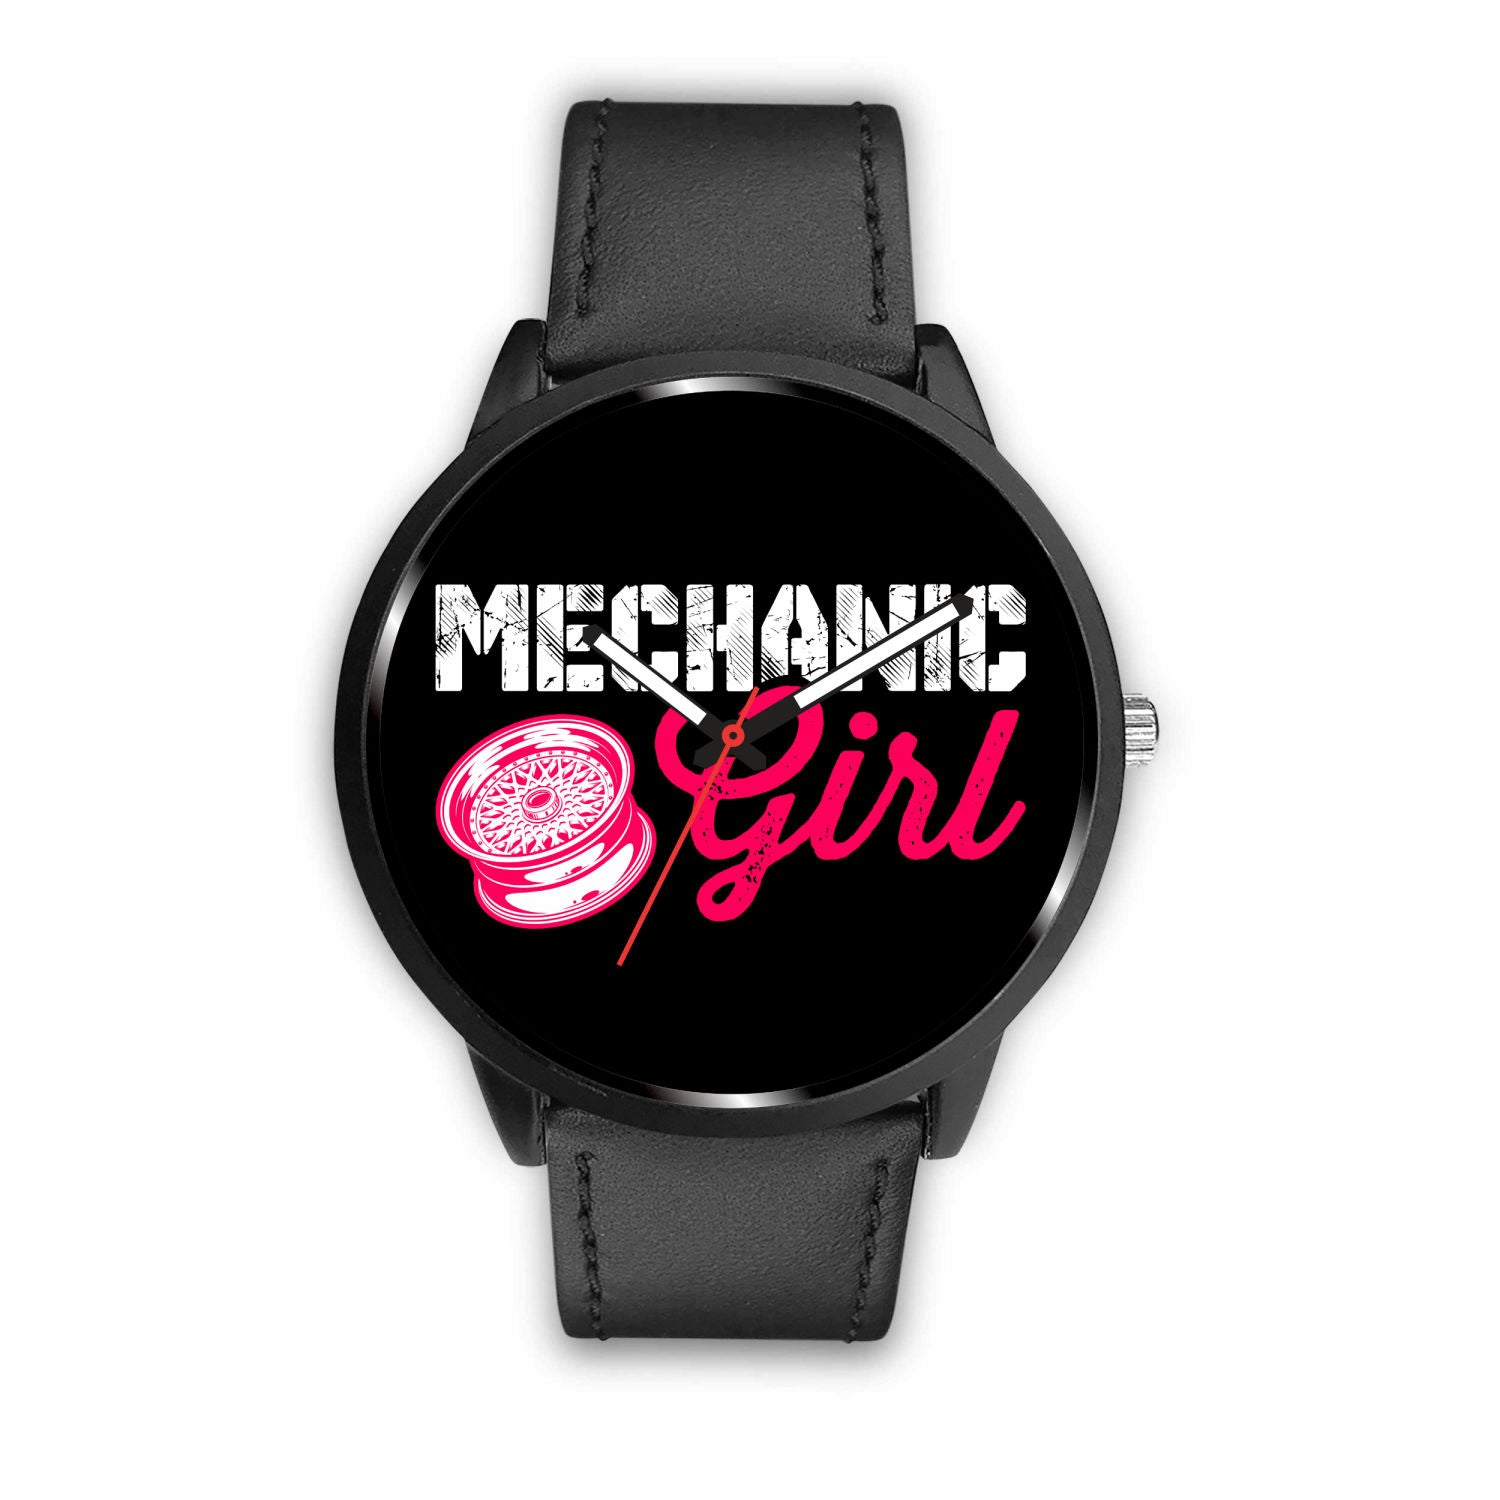 Mechanic Girl Watch